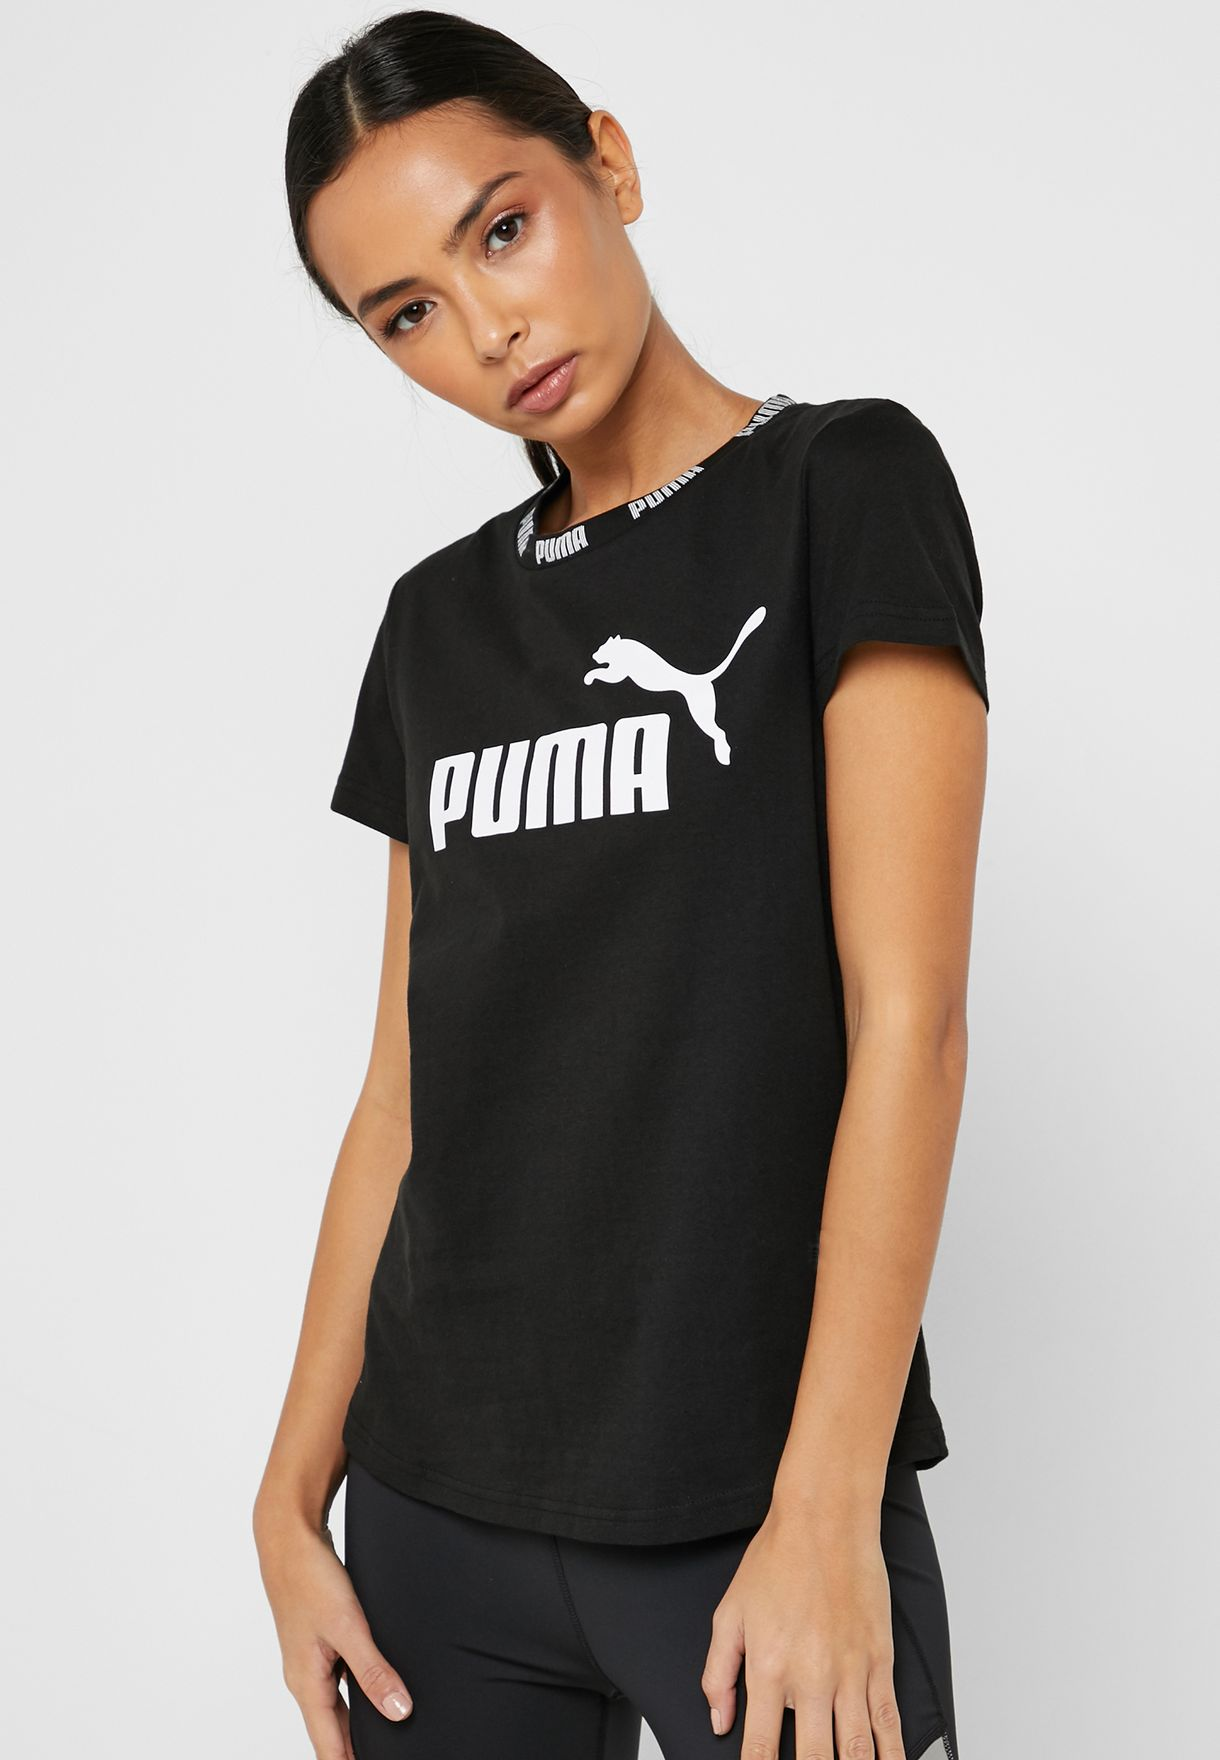 6a31d9144a07 Shop PUMA black Amplified T-Shirt 85463901 for Women in UAE ...